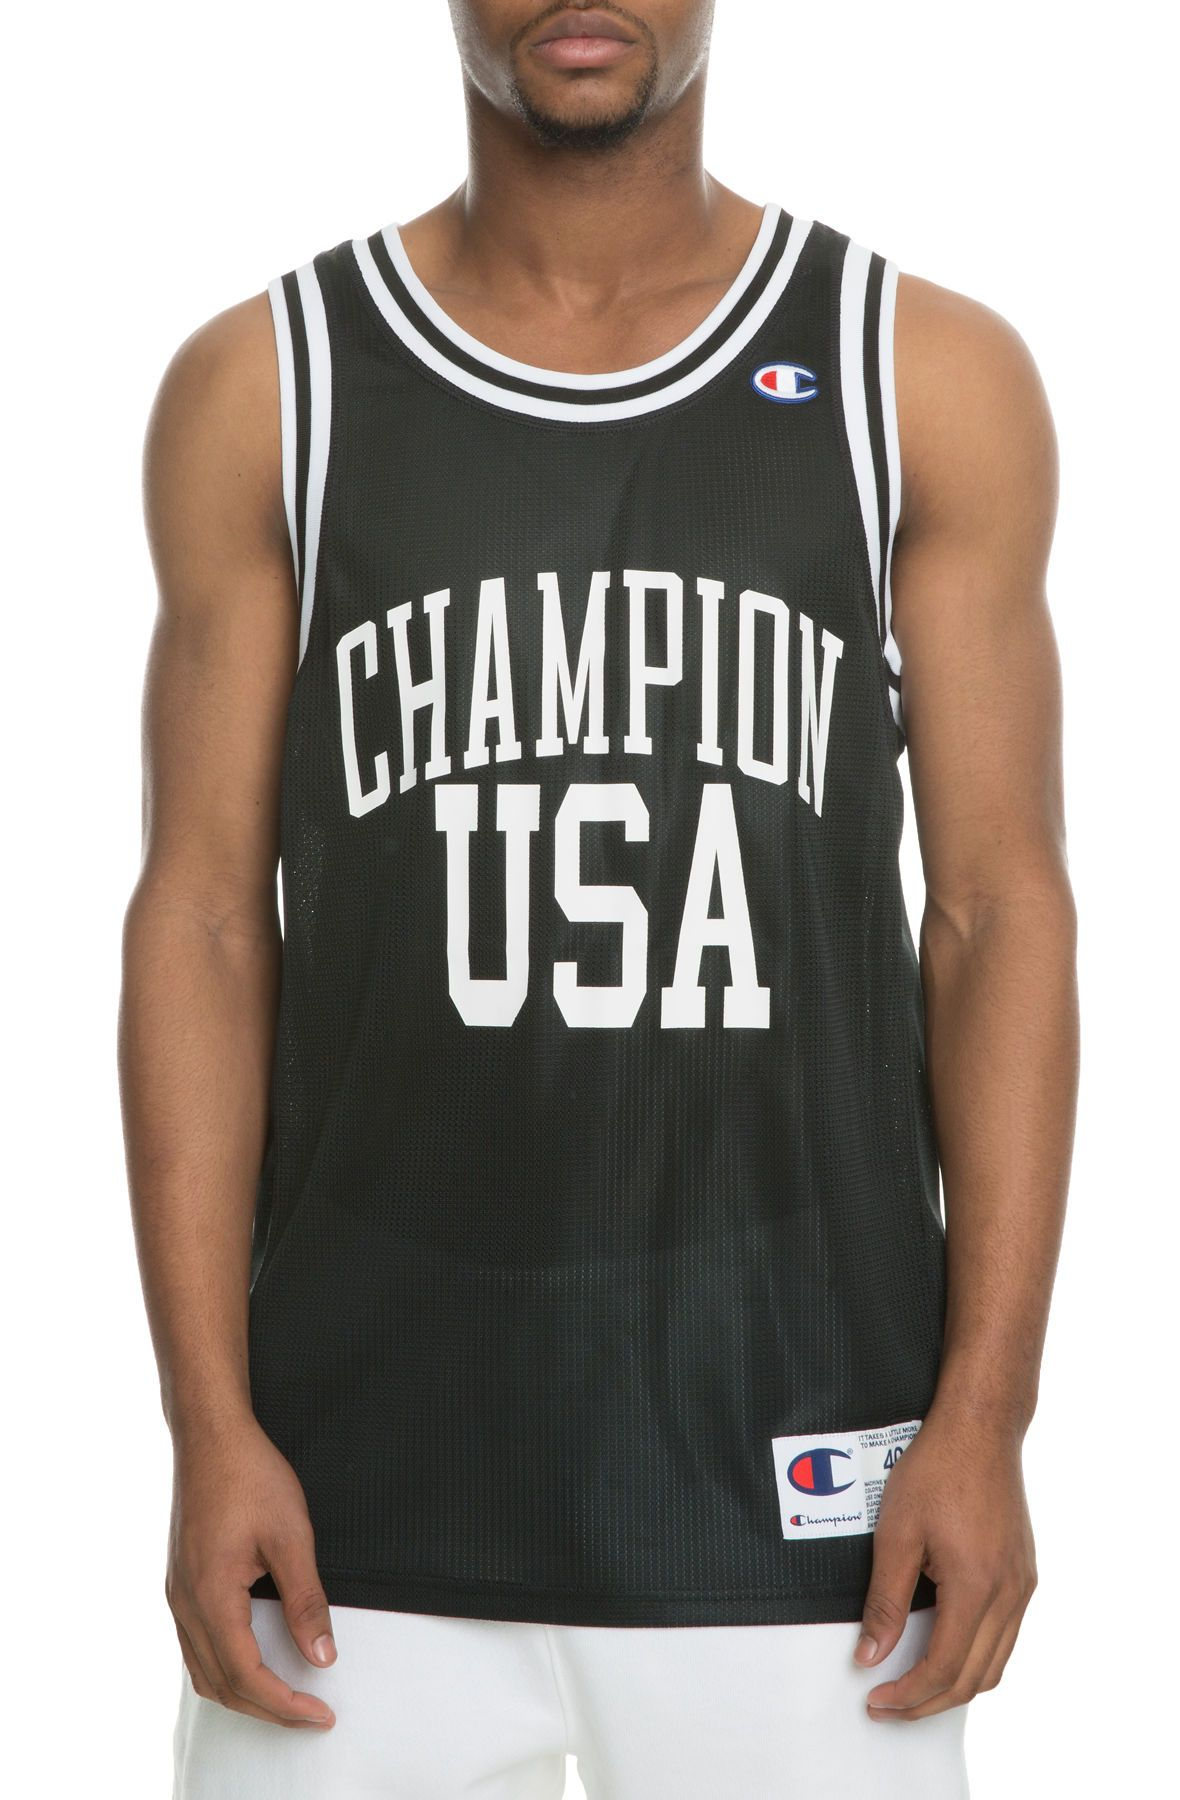 The City Mesh USA Basketball Jersey in Black Black